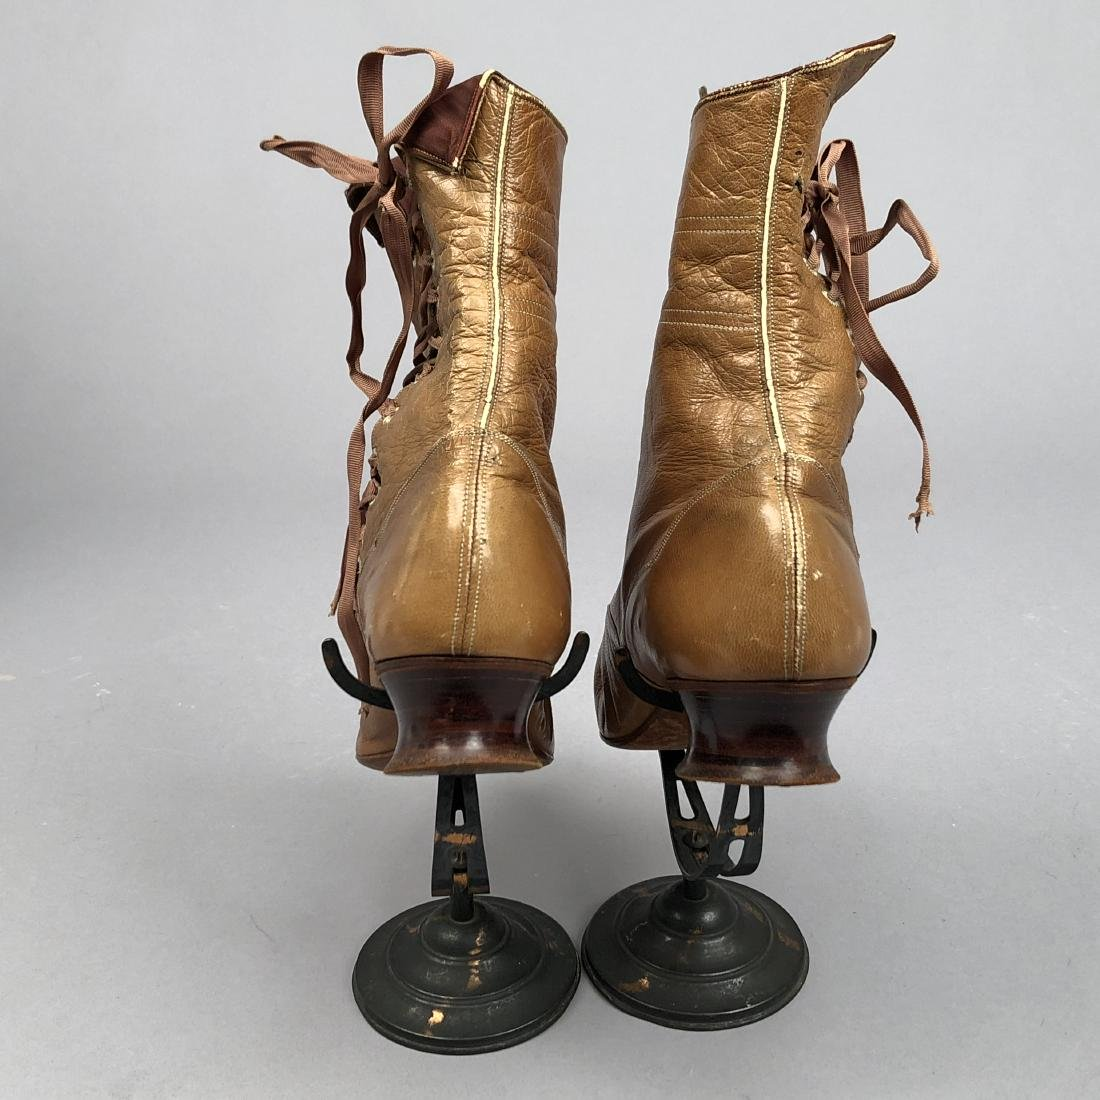 LADY'S SIDE-LACING BOOTS with TOPSTITCHING, 1890s - 3